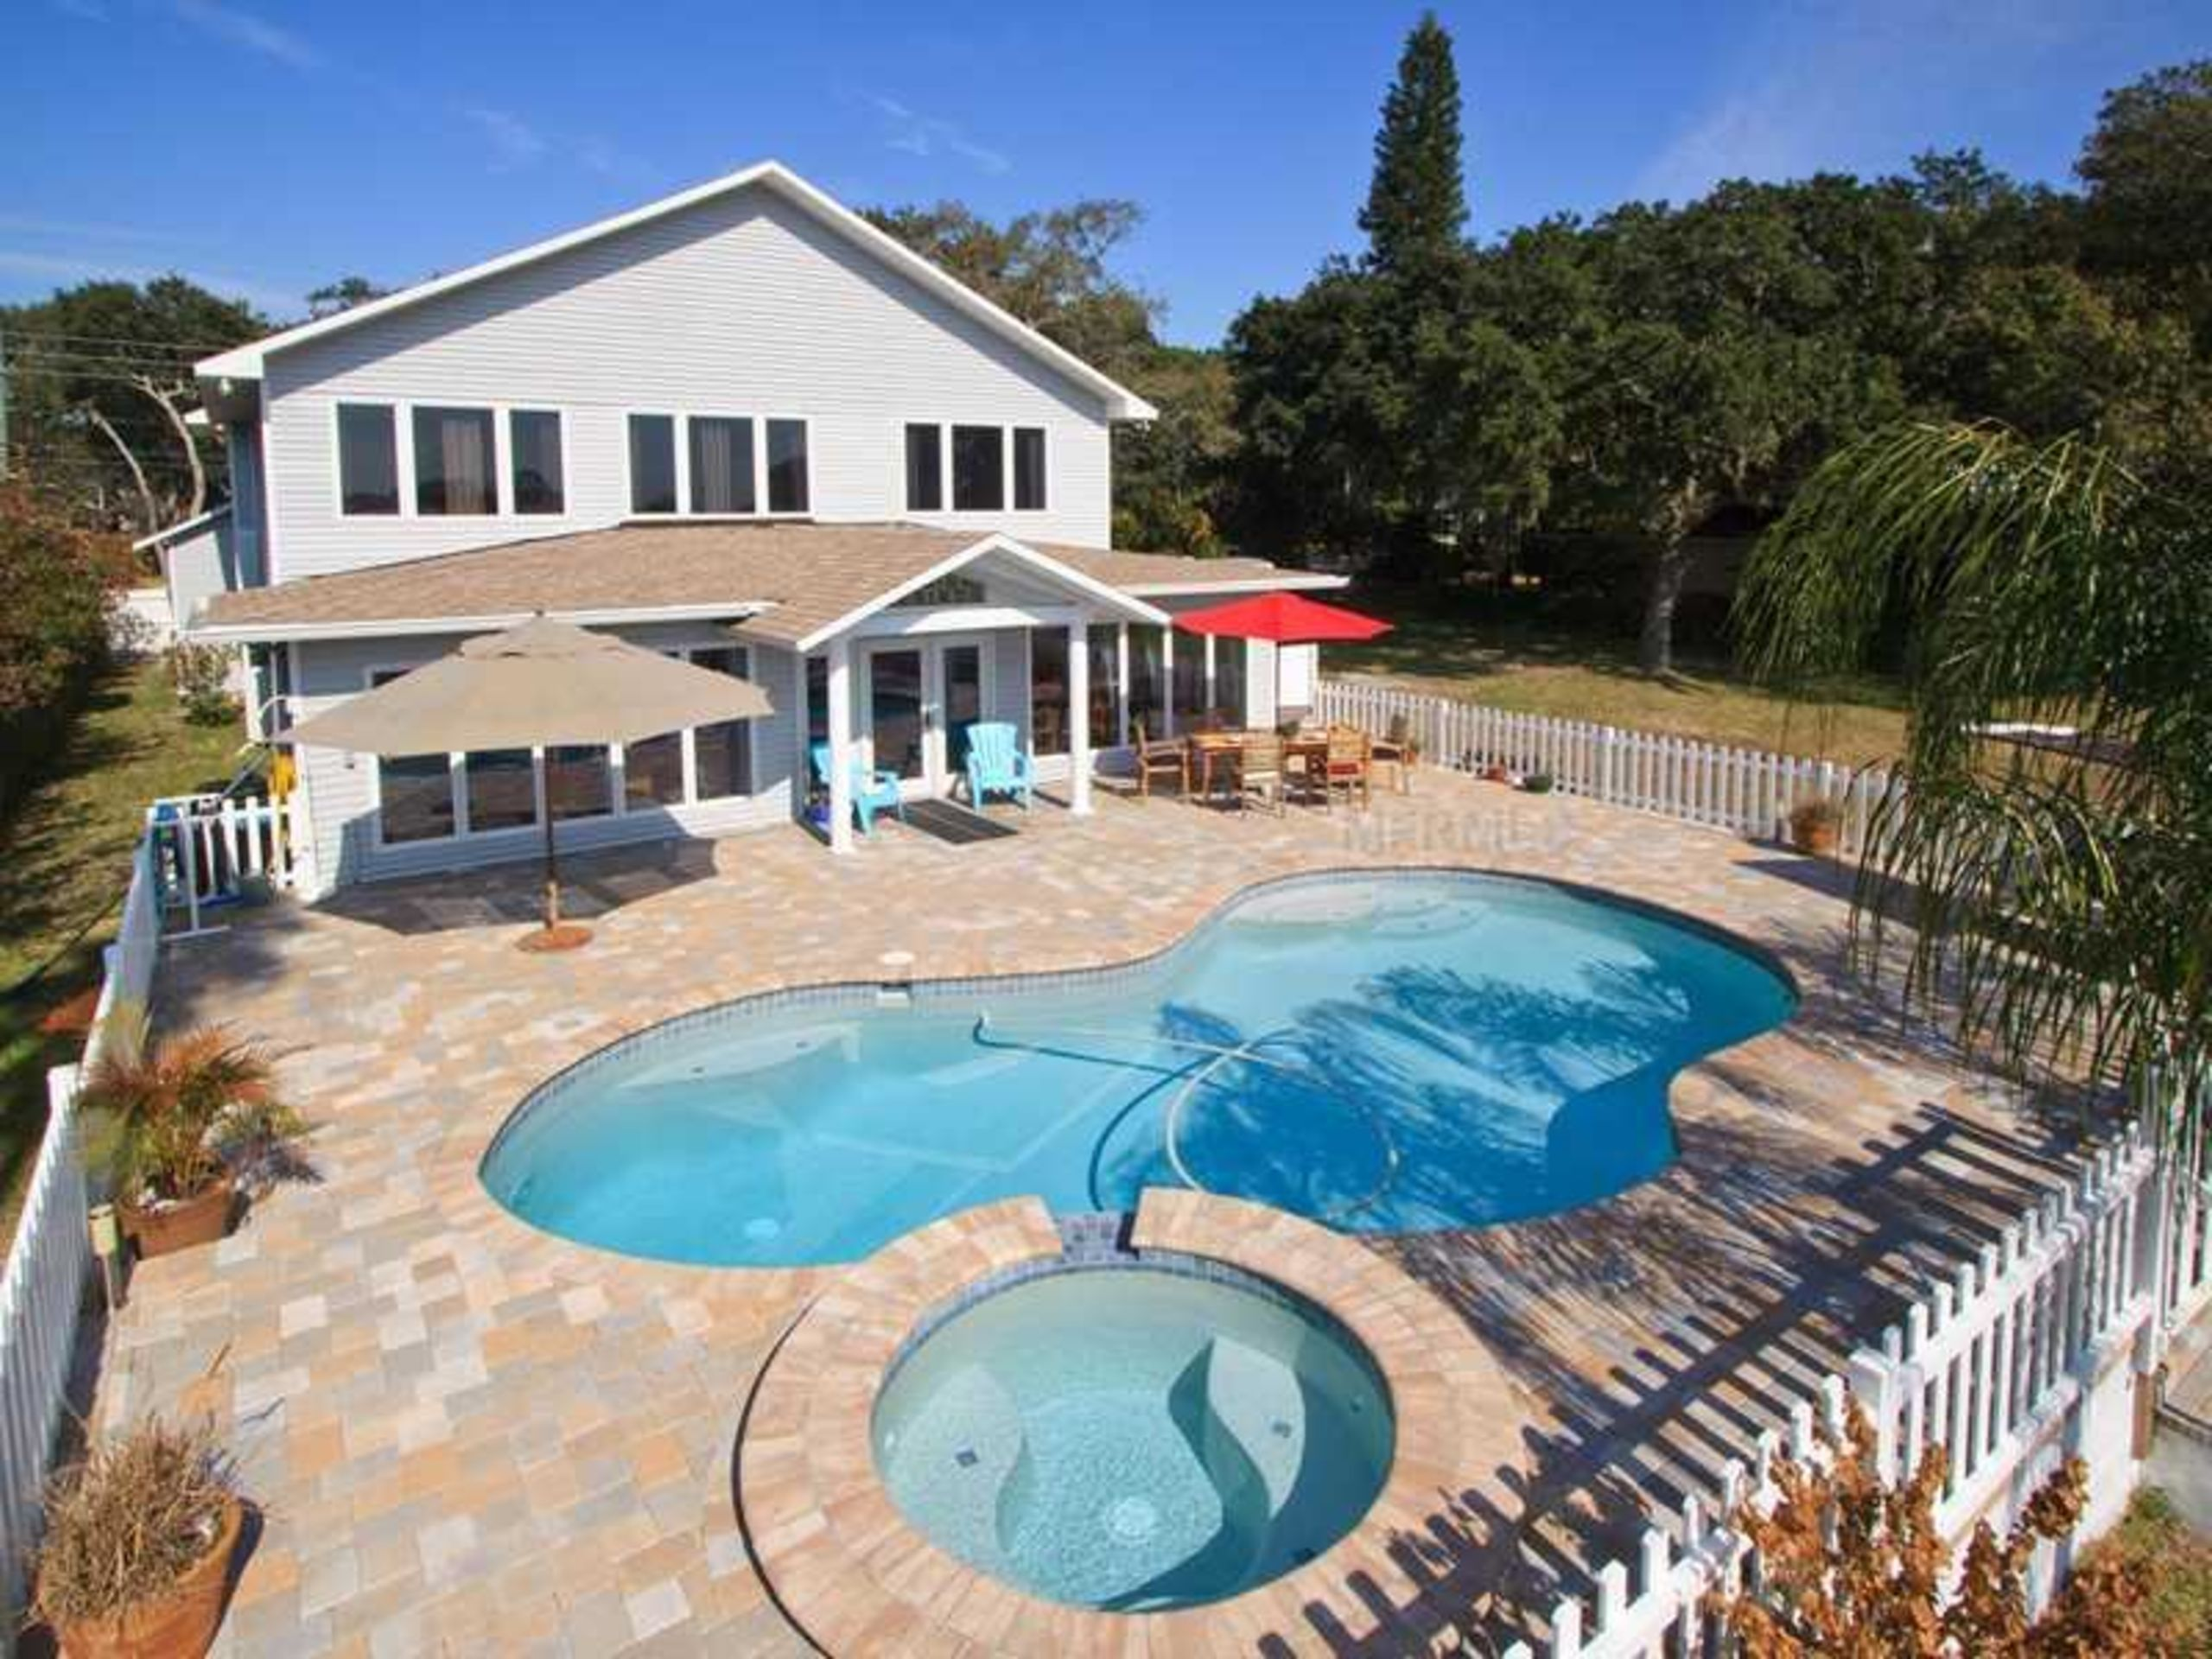 Fabulous Waterfront Home with Pool in HARBOR VIEW, Seminole, FL